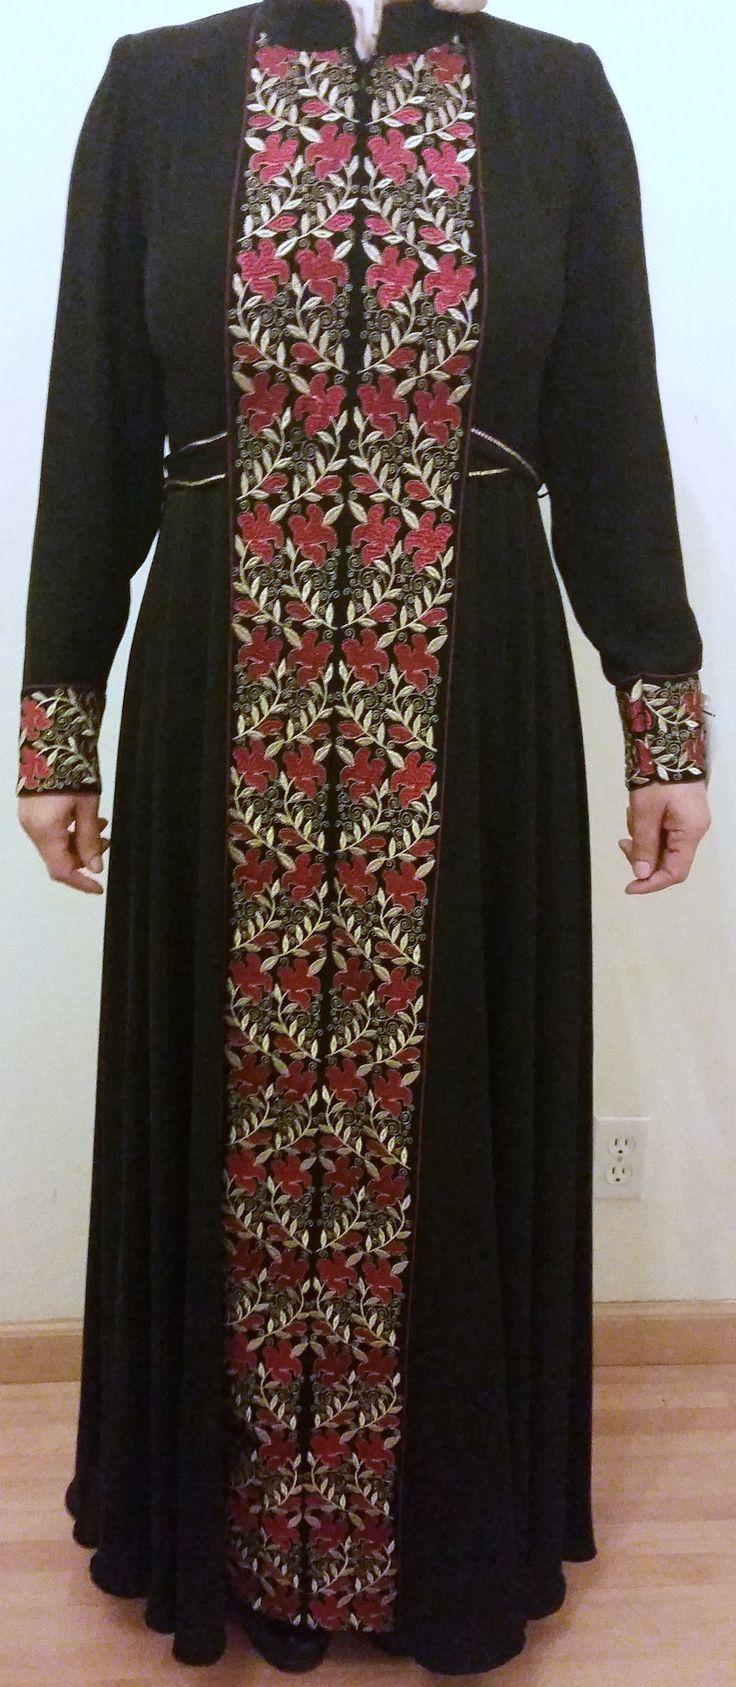 Abaya 8 Islamic Clothing, Abayas, Jilbabs, Hijabs, Islamic accessories, Modest Clothes,Hijab Fashion